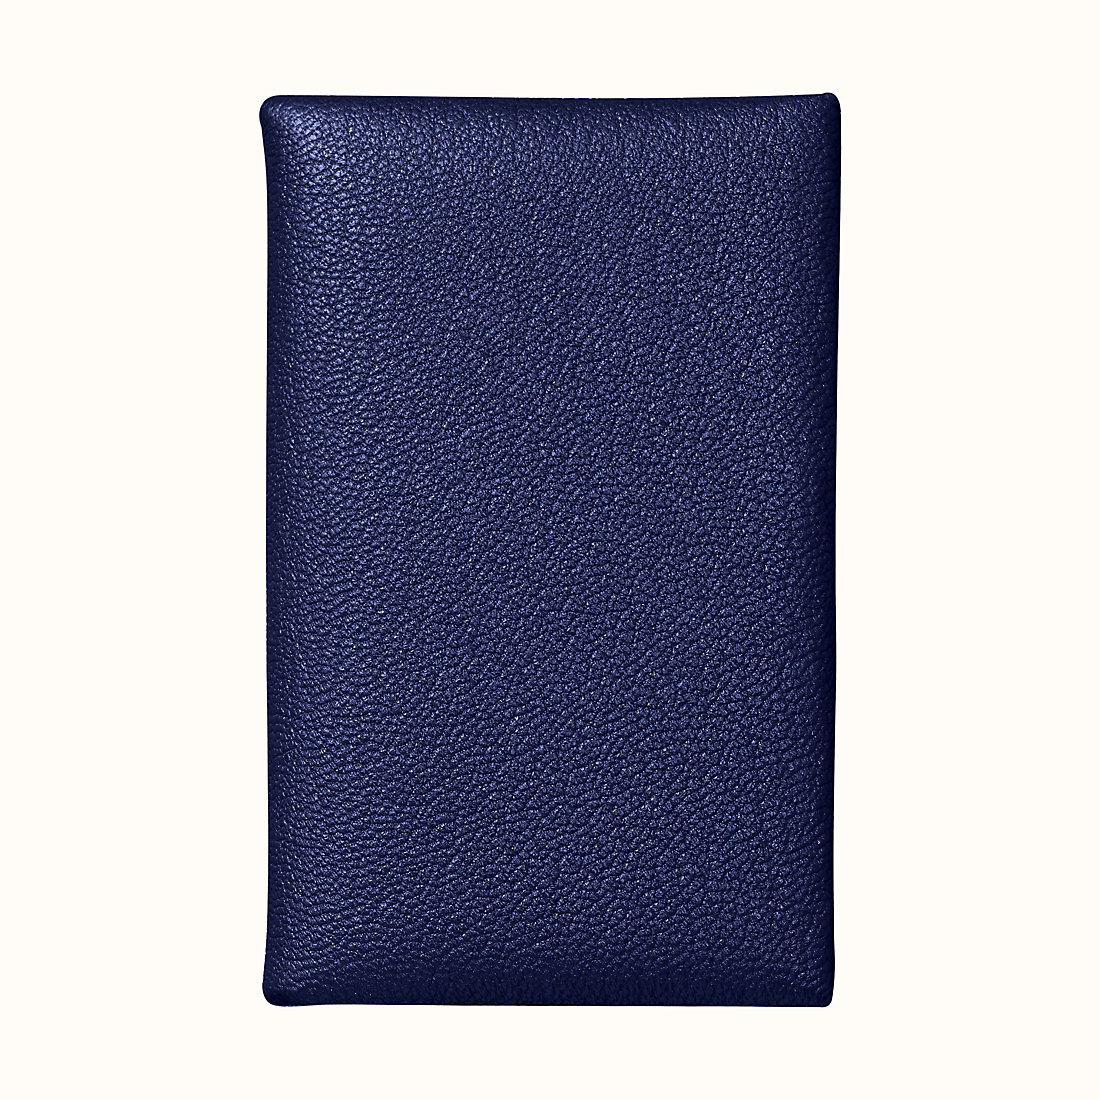 澳門愛馬仕卡包 Macao Hermes Calvi verso card holder CKM3 墨藍色